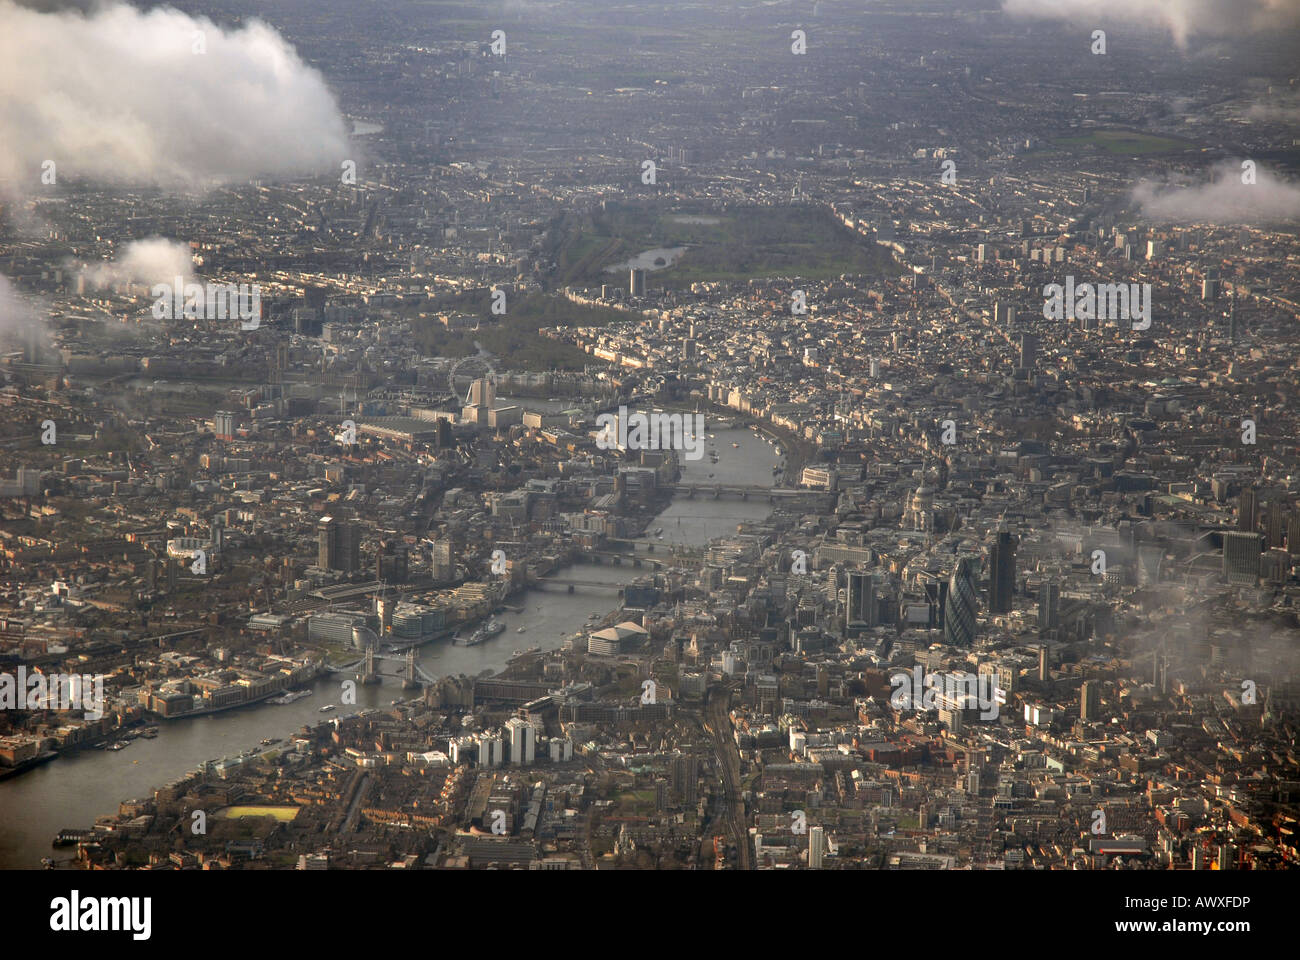 Aerial view of central London looking west across the River Thames. The City and Tower Bridge. England Stock Photo